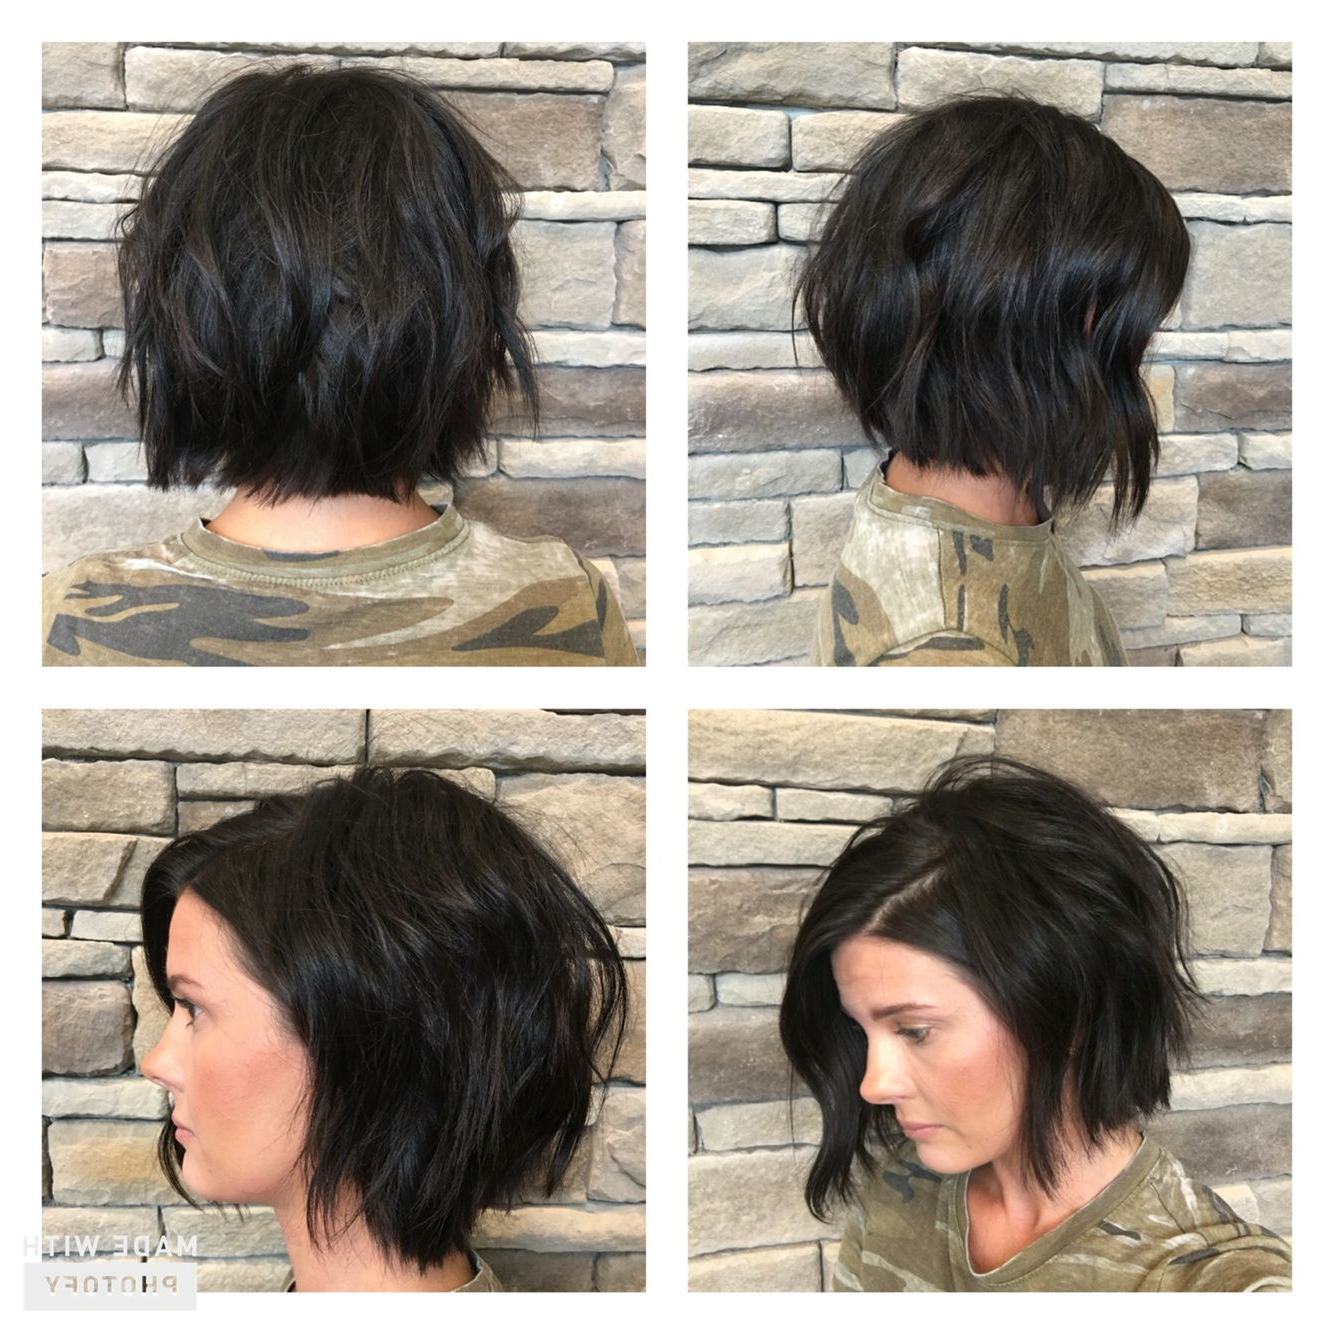 Texturized Modern Bob #studio603 | Short Styles In 2018 | Pinterest Throughout Modern Chocolate Bob Haircuts (View 19 of 20)